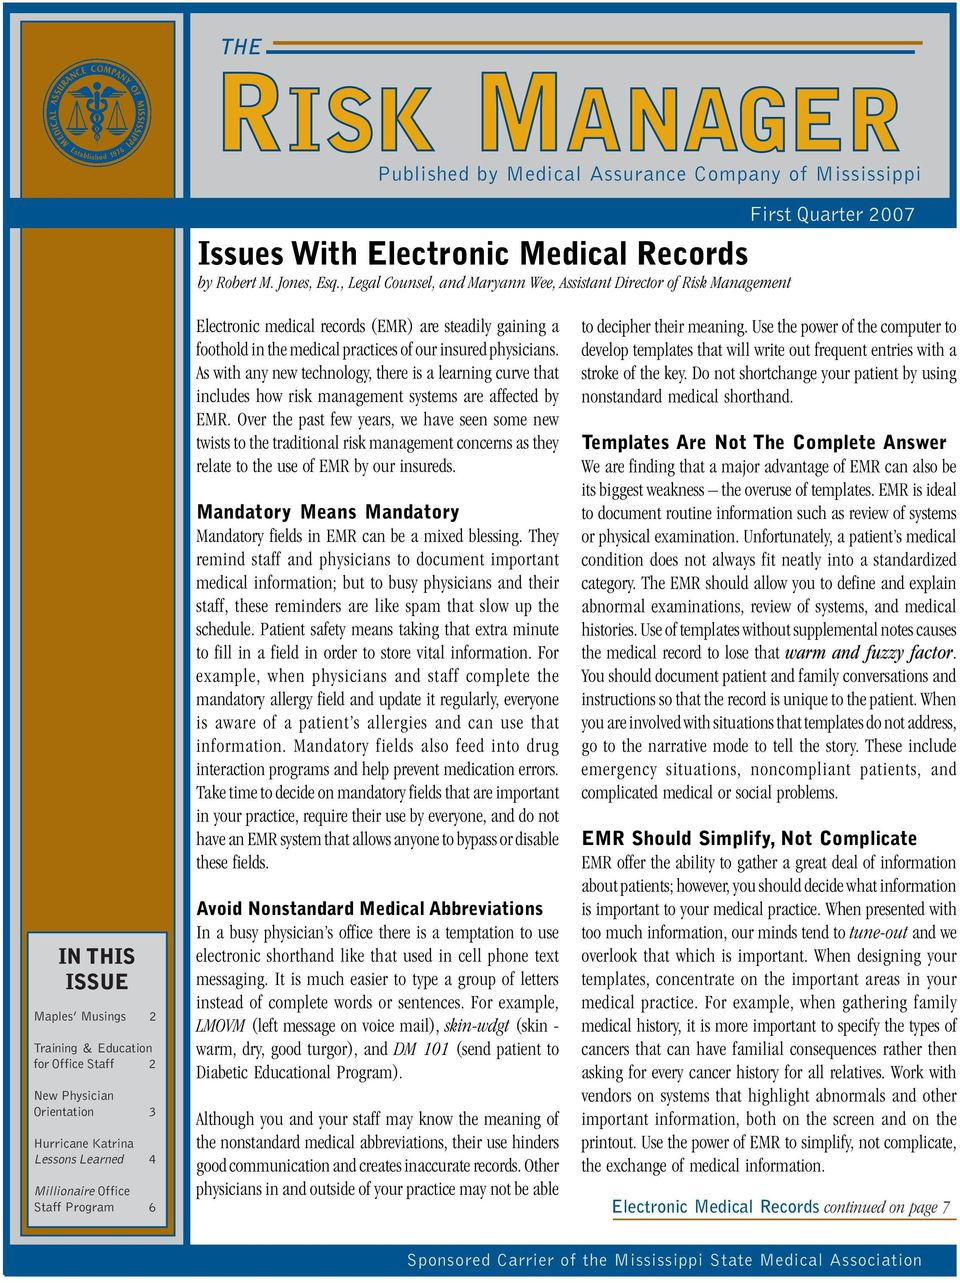 Learned 4 Millionaire Office Staff Program 6 Electronic medical records (EMR) are steadily gaining a foothold in the medical practices of our insured physicians.